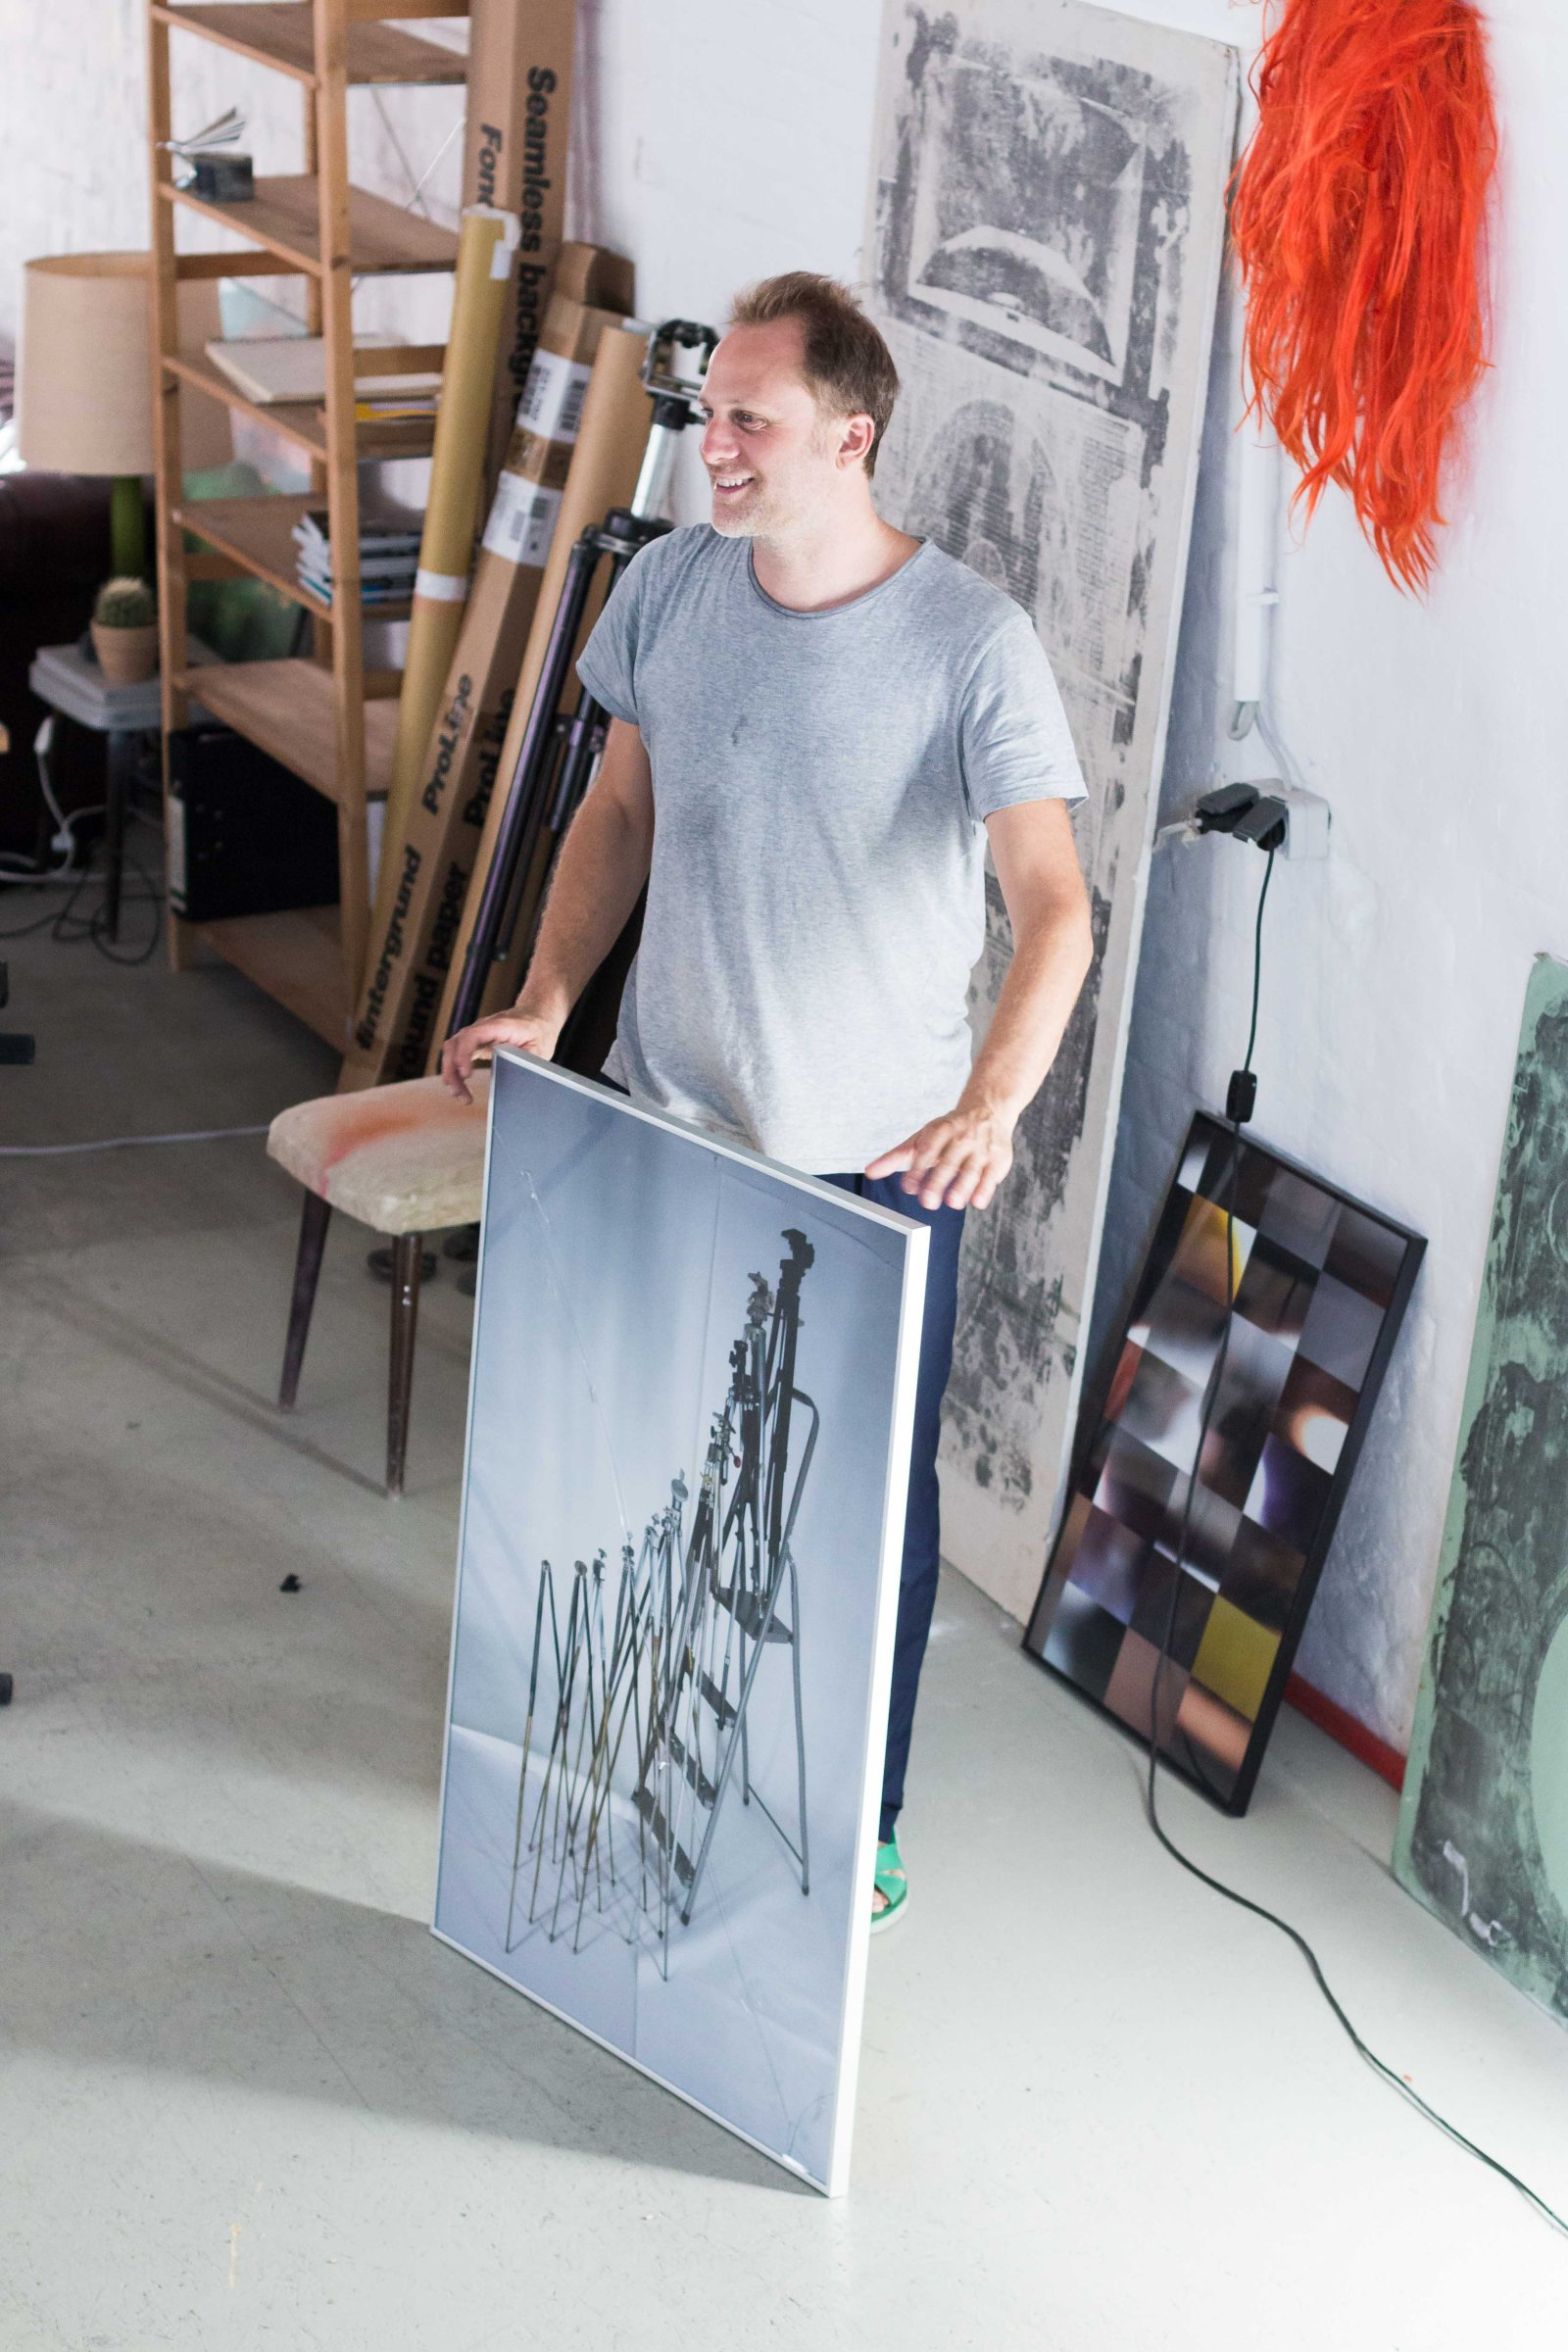 VISIT A CONTEMPORARY ARTIST'S STUDIO